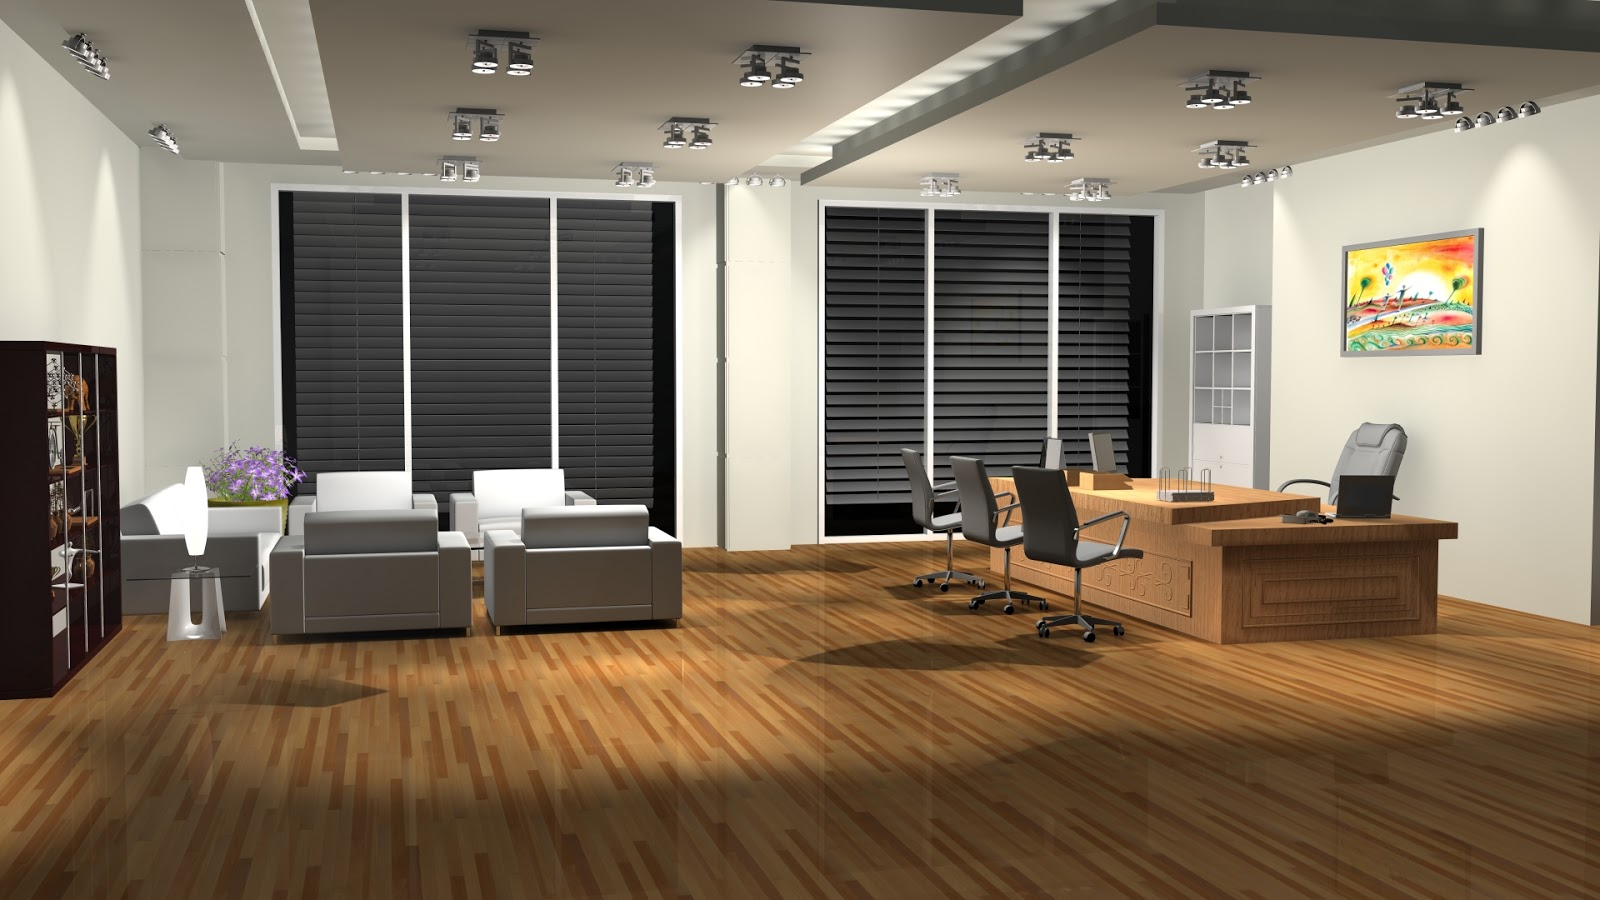 Sajid designs office room 3d interior design 3ds max for 3d interior designs images